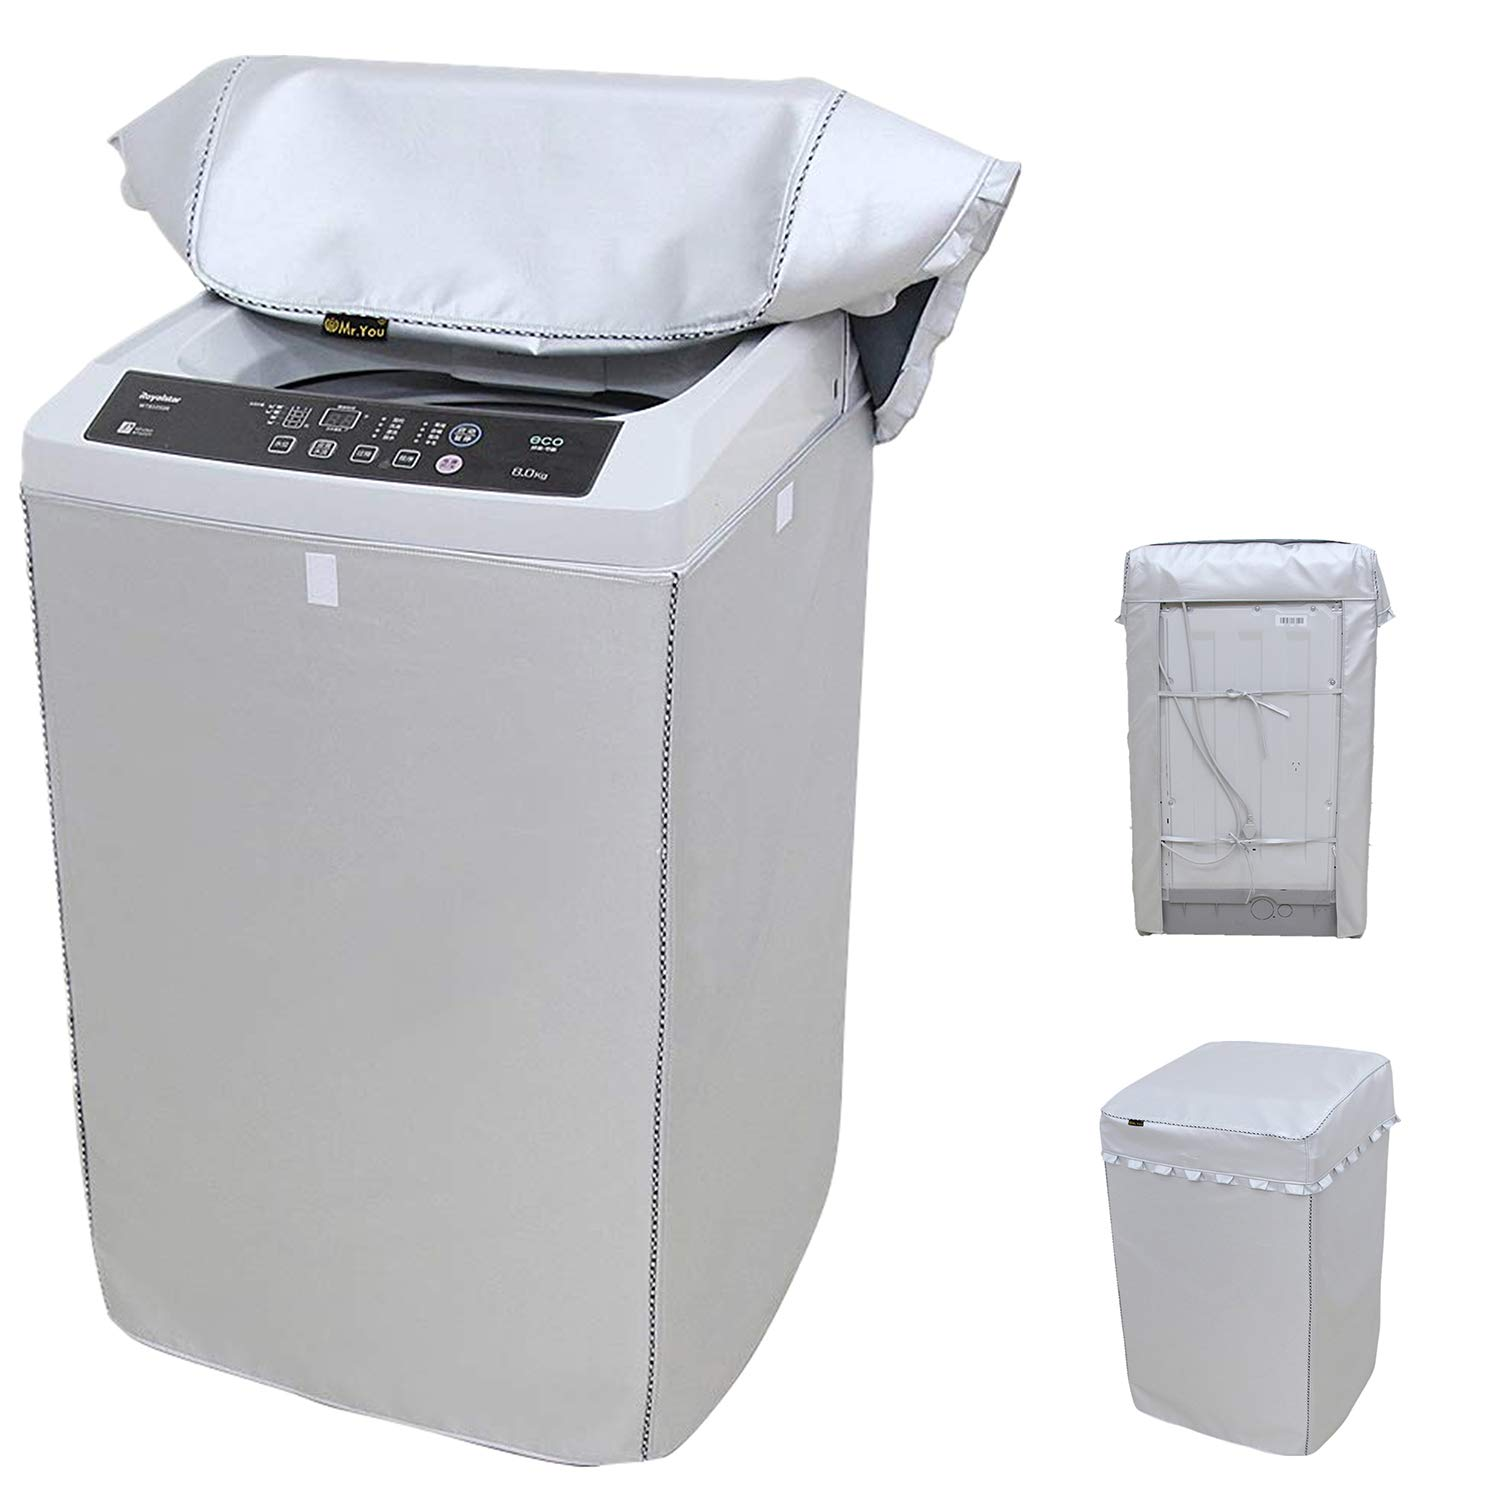 "Portable Washing Machine Cover,Top Load Washer Dryer Cover,Waterproof Full-Automatic/Wheel Washing Machine Cover(24""25""38""inches X-Large)"